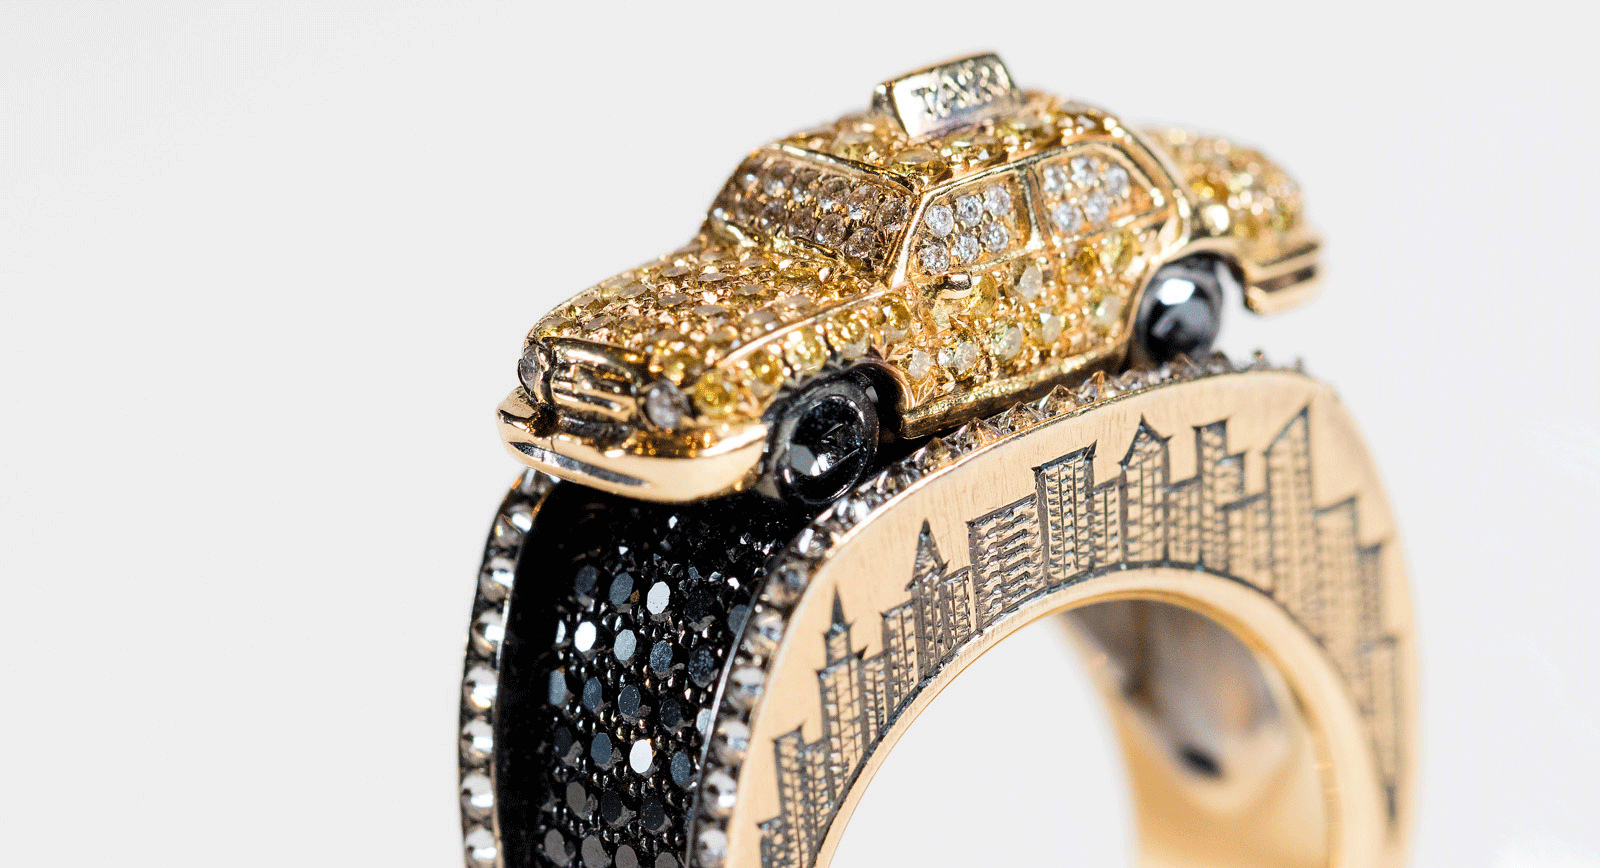 New York in Jewellery: Big Apple Through the Lense of Jewellery Designers